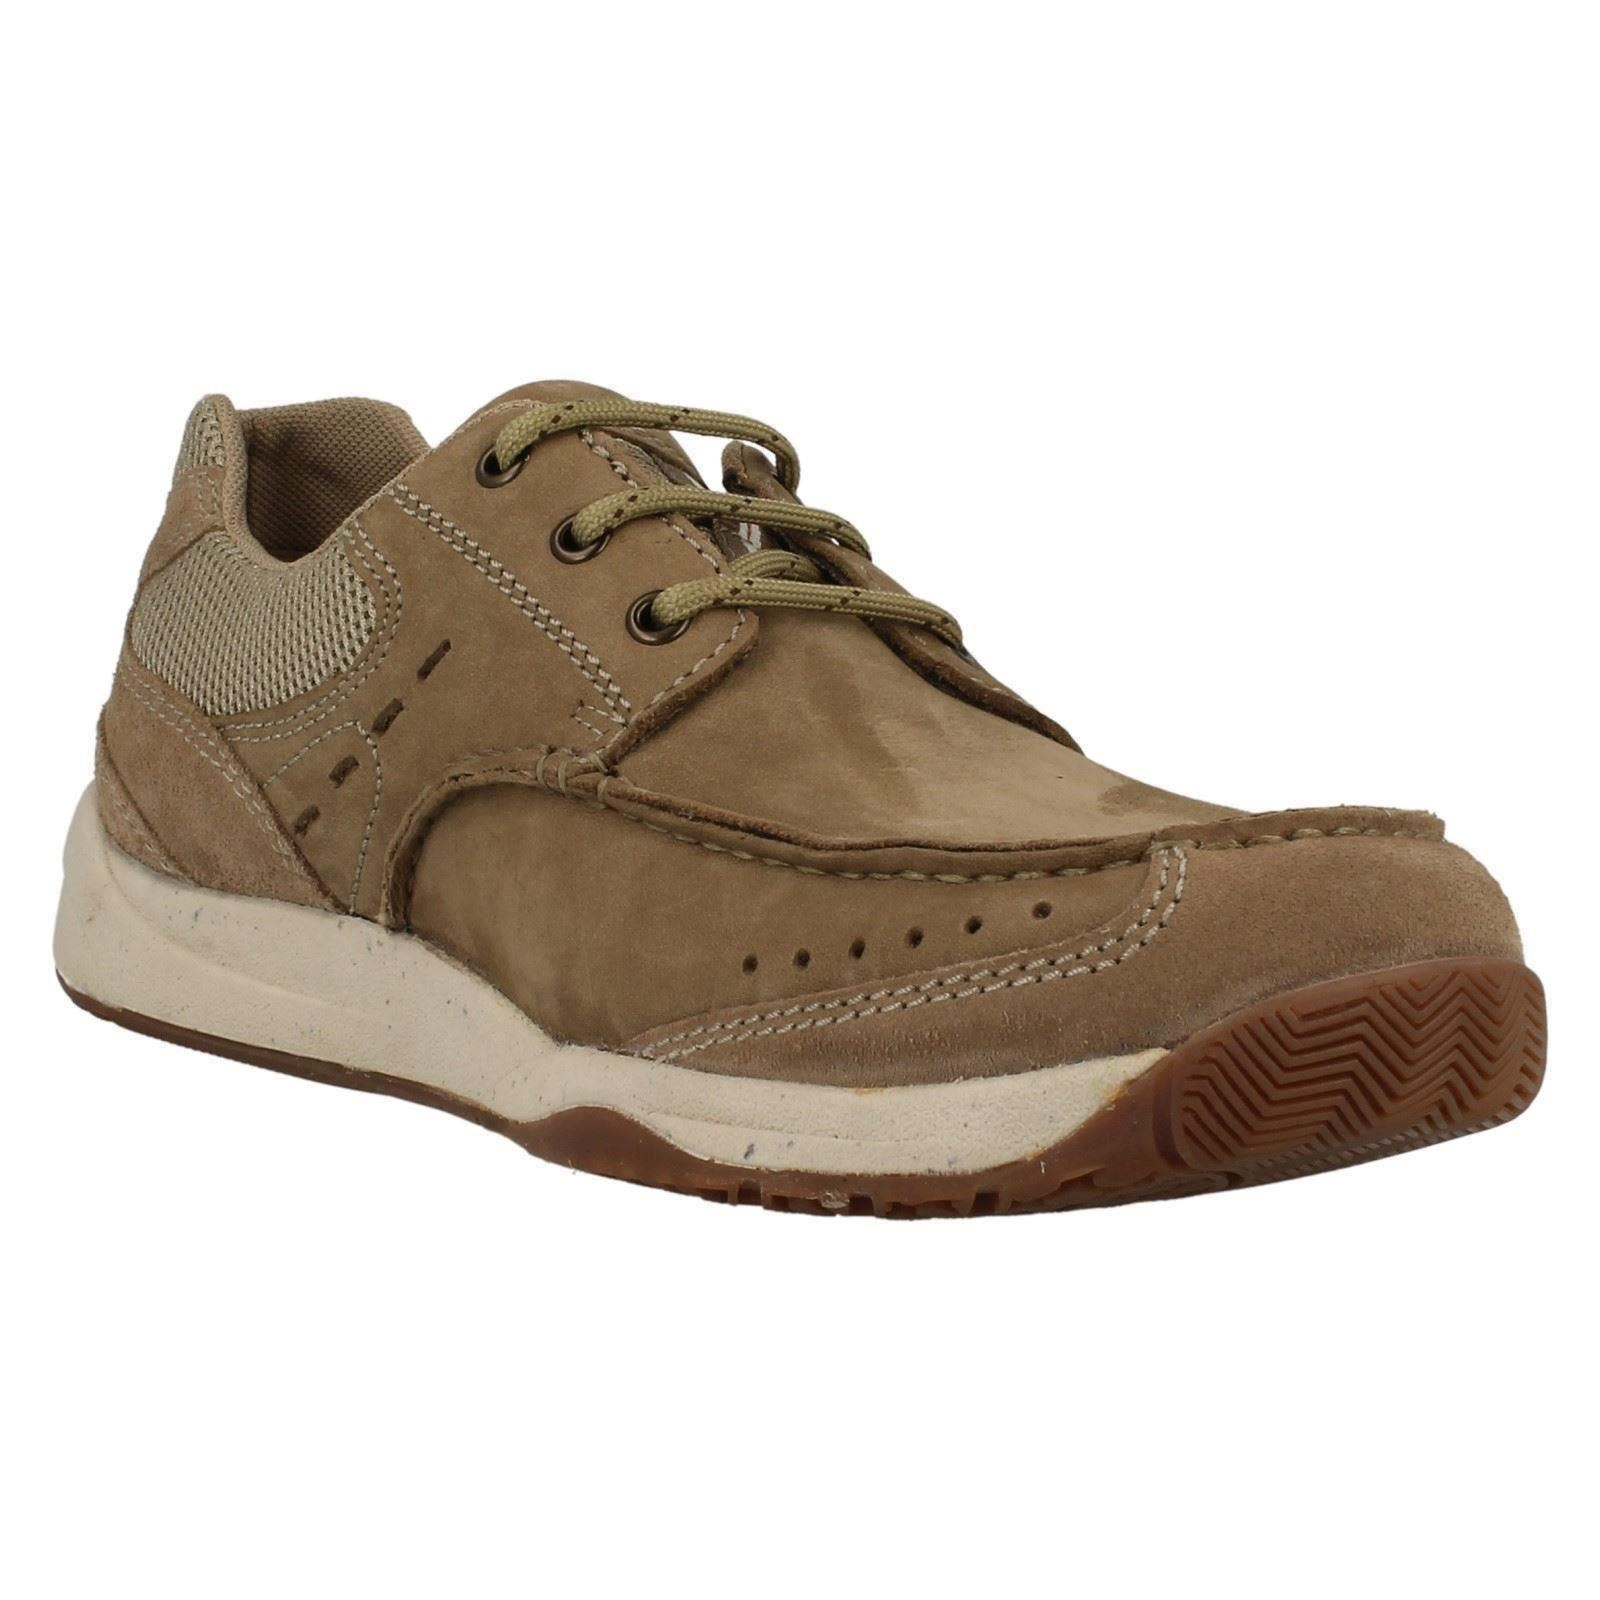 mens clarks casual lace up shoes allston edge ebay